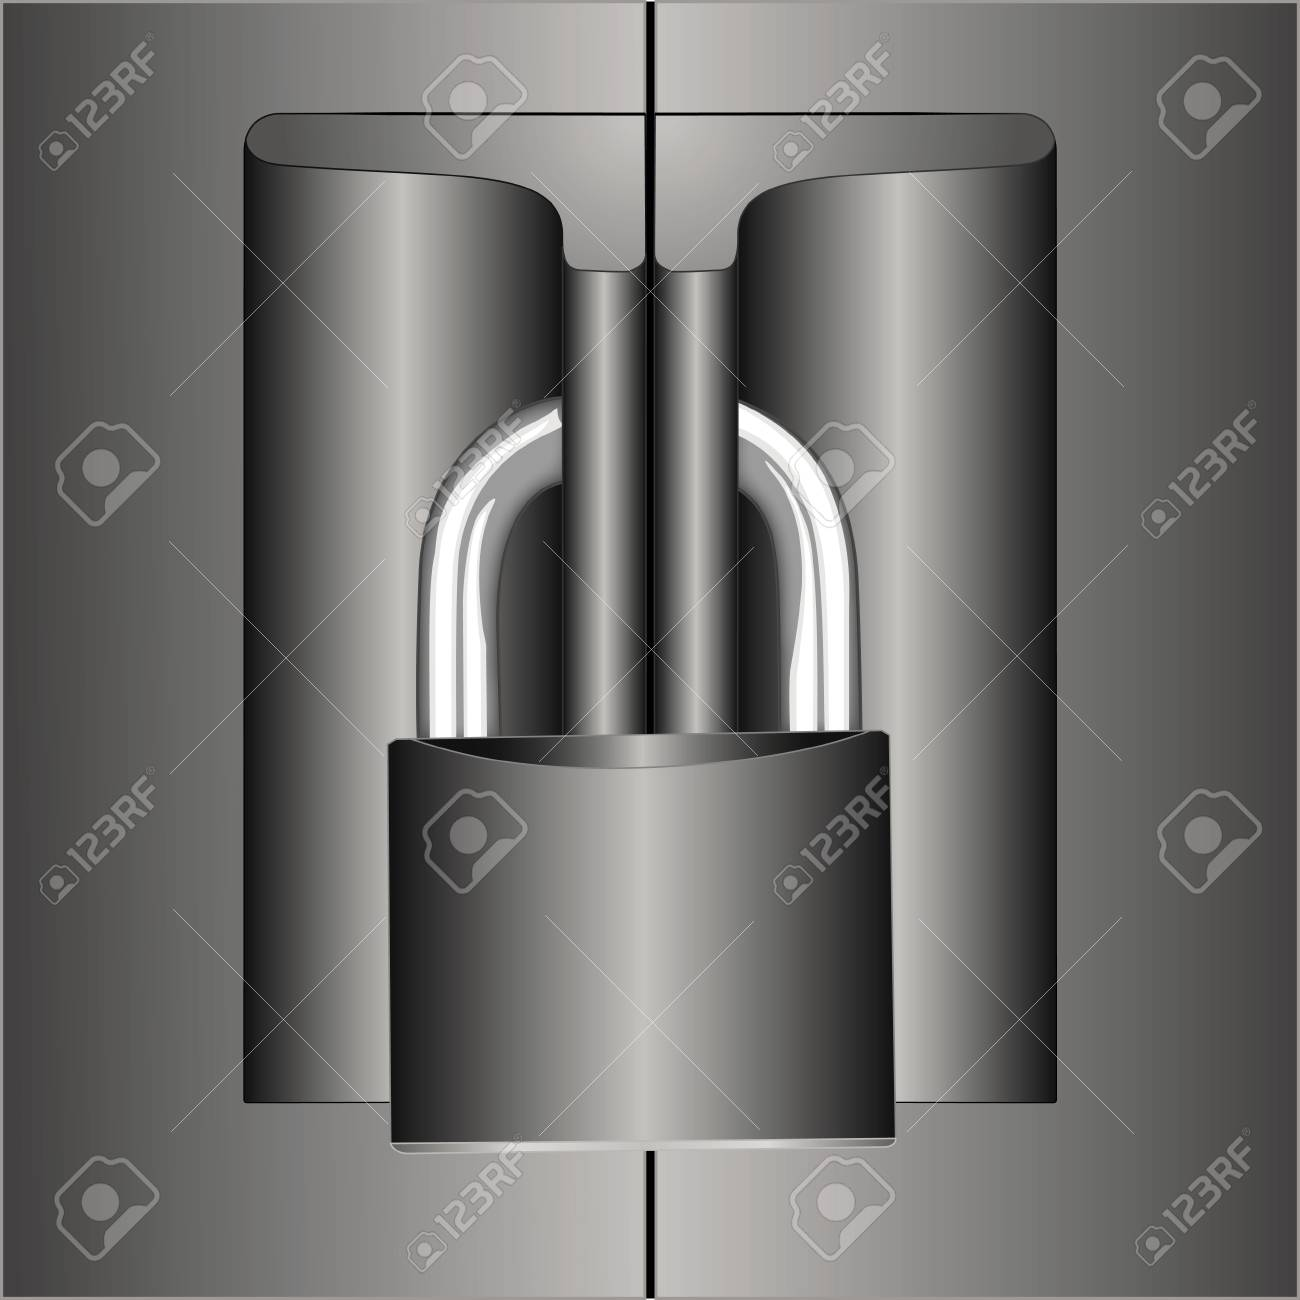 Safe closed with padlock Stock Vector - 11184375